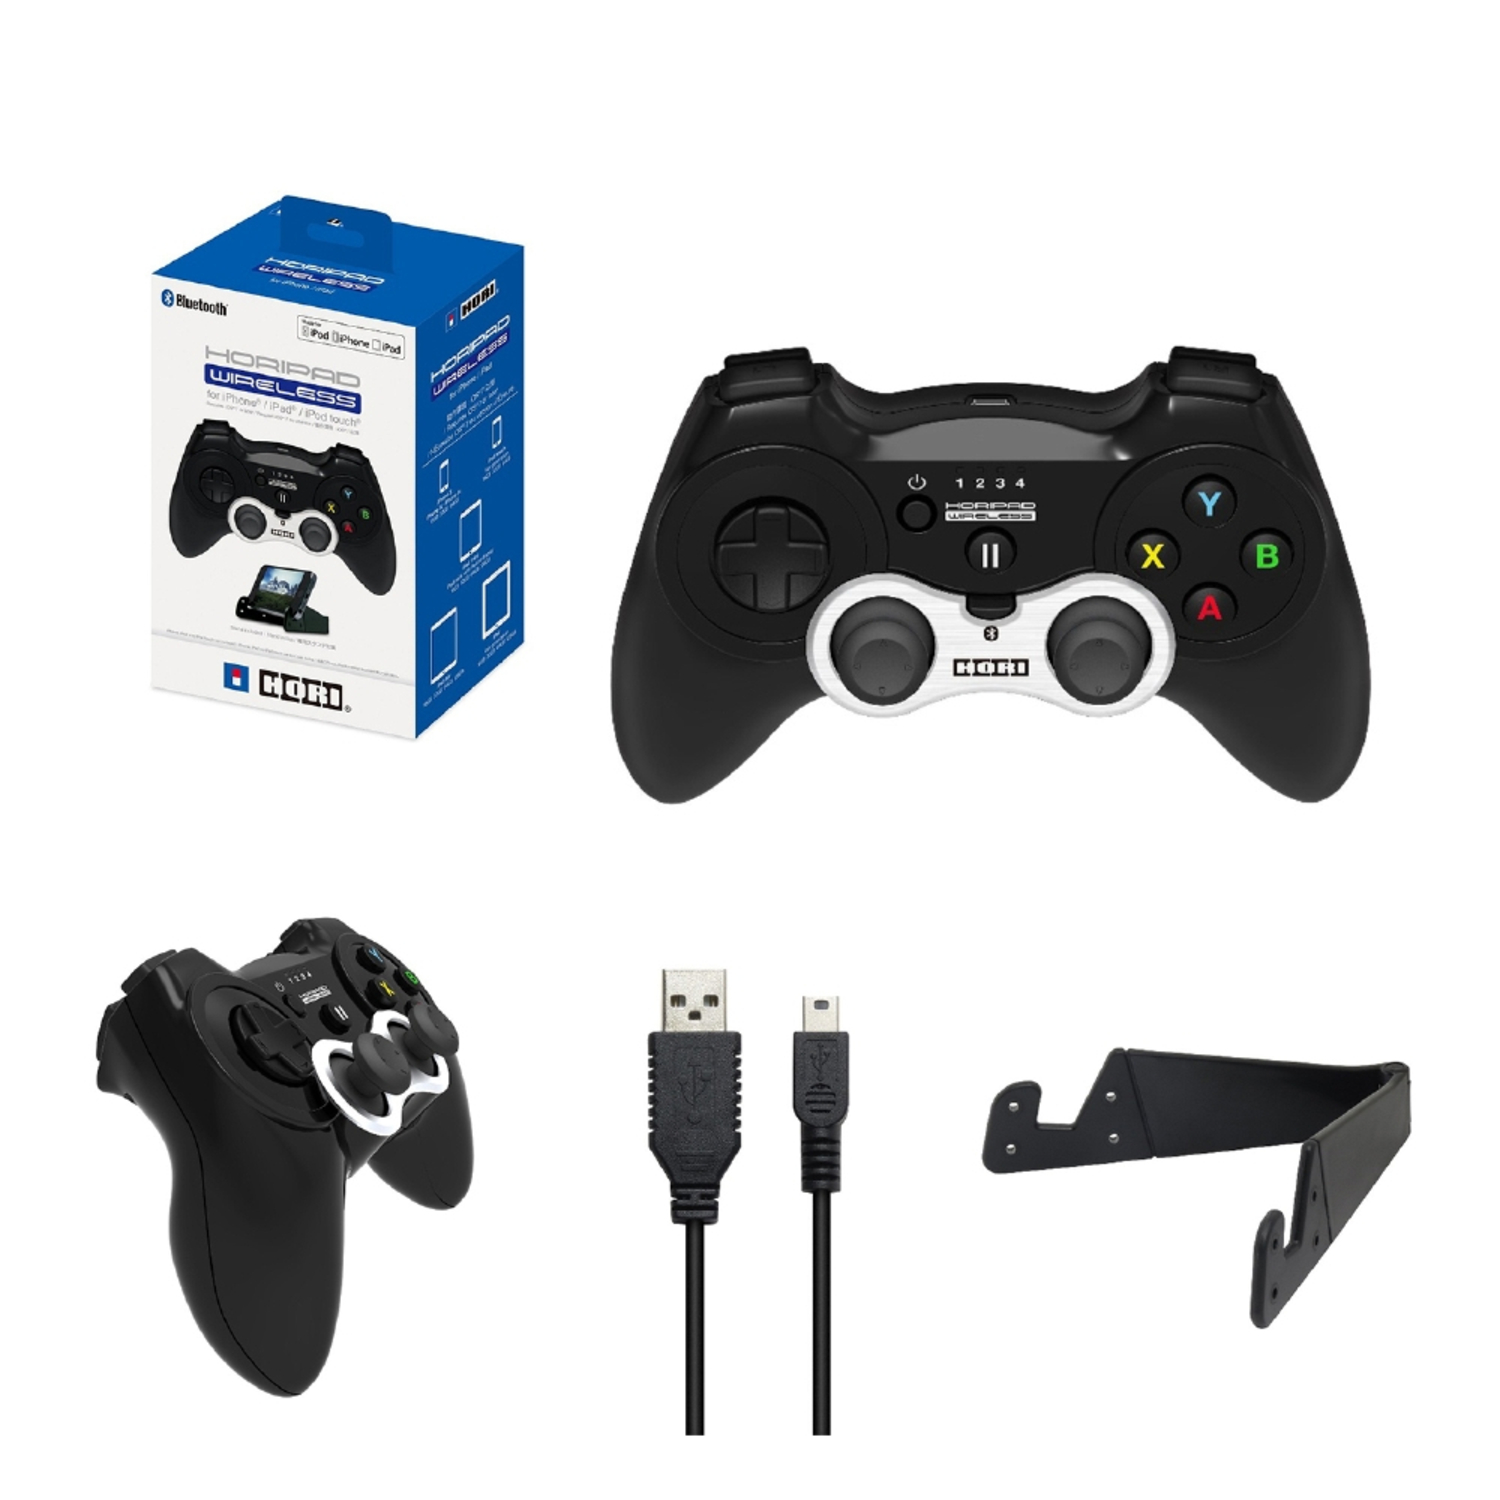 iOS - Controller - Wireless - Horipad for Apple iPhone / iPad / iPod / Apple TV (Hori)